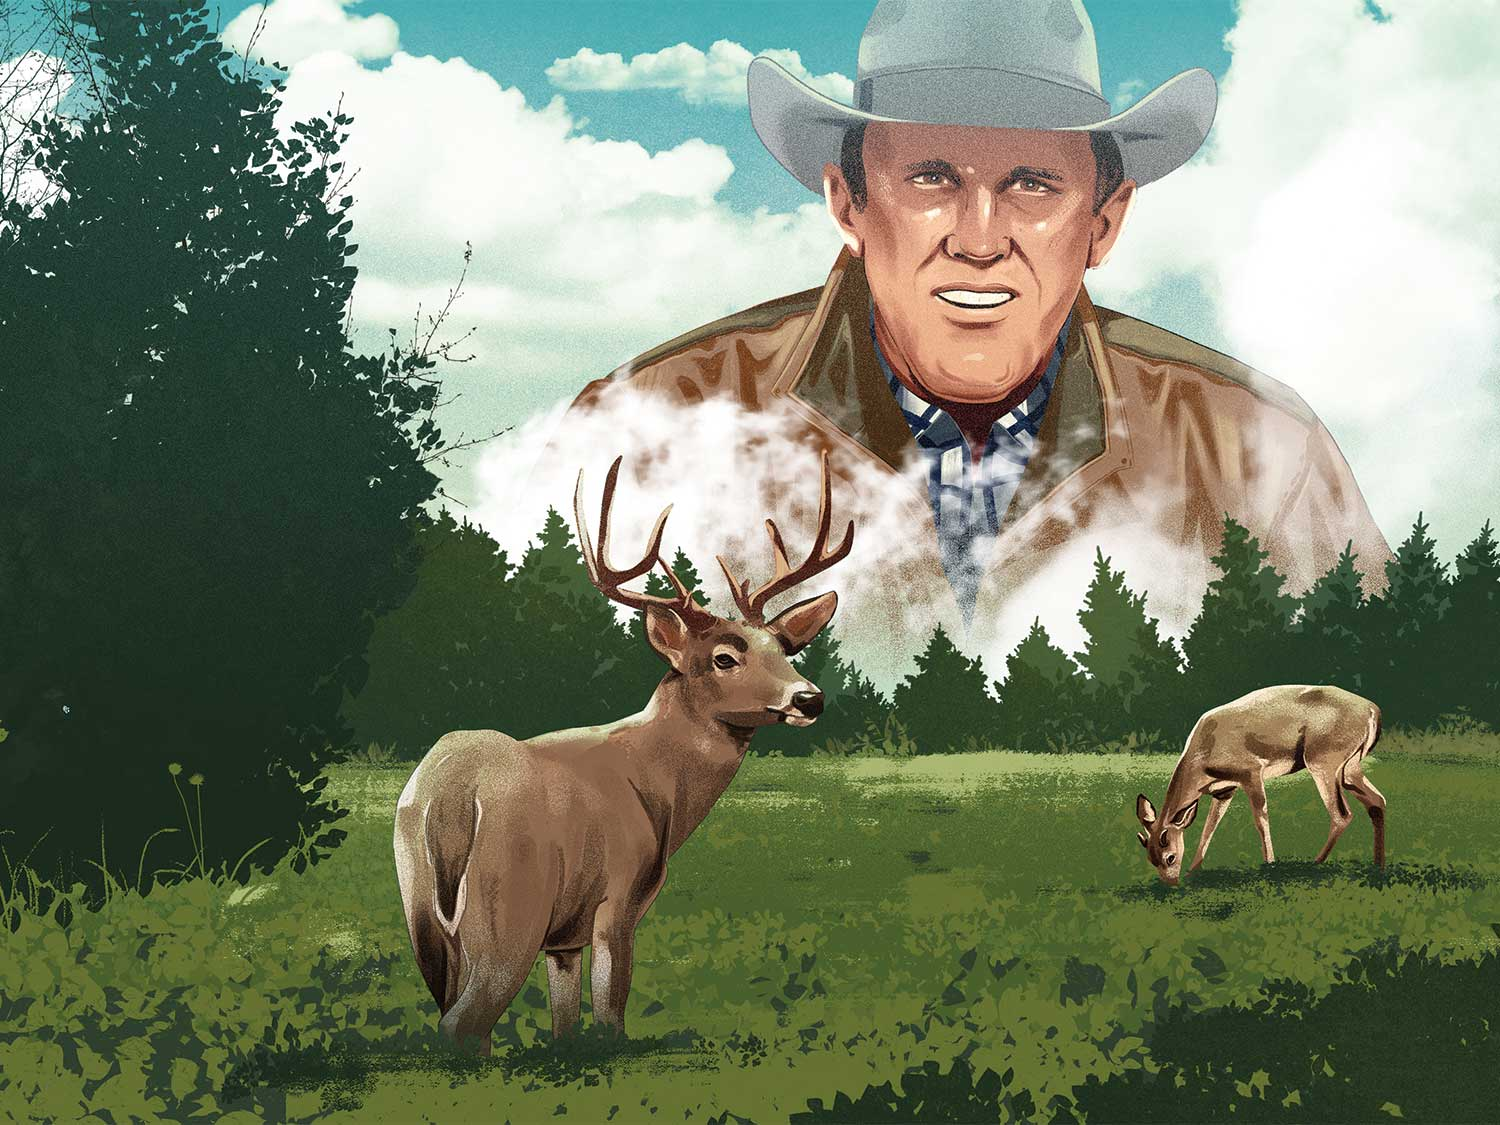 Illustration of a man overlooking a field of deer.